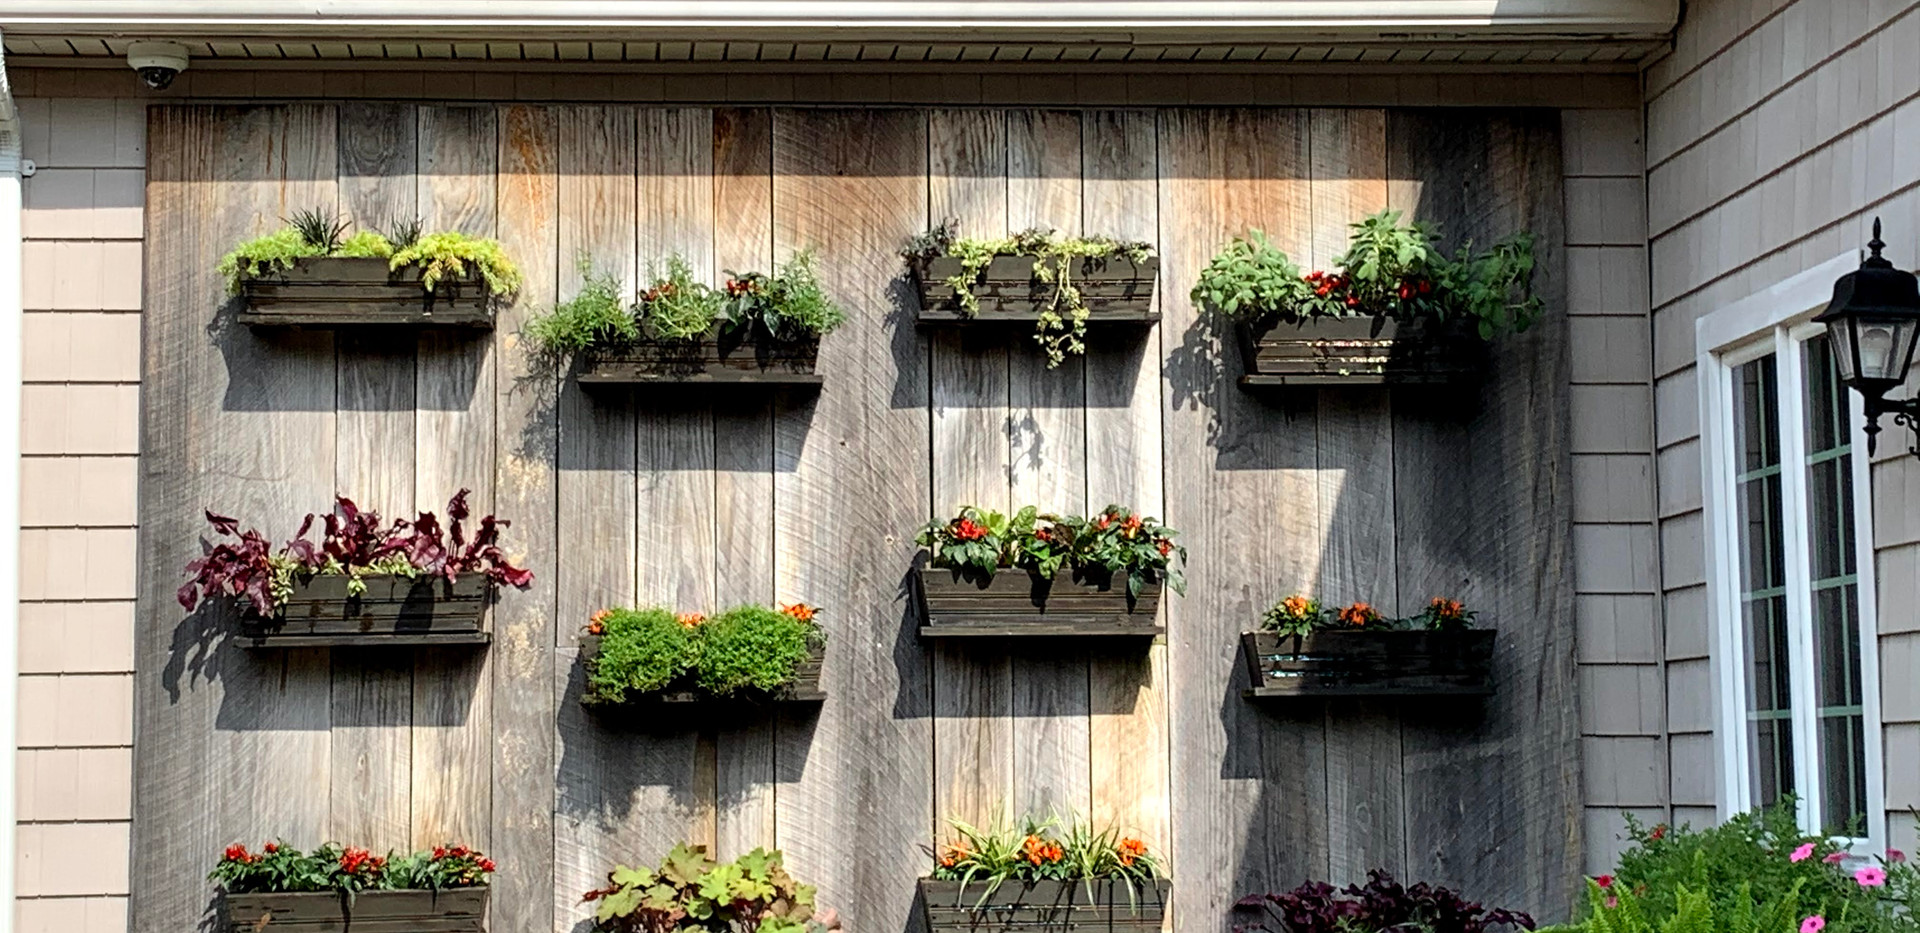 Live Herb Wall at a Restaurant